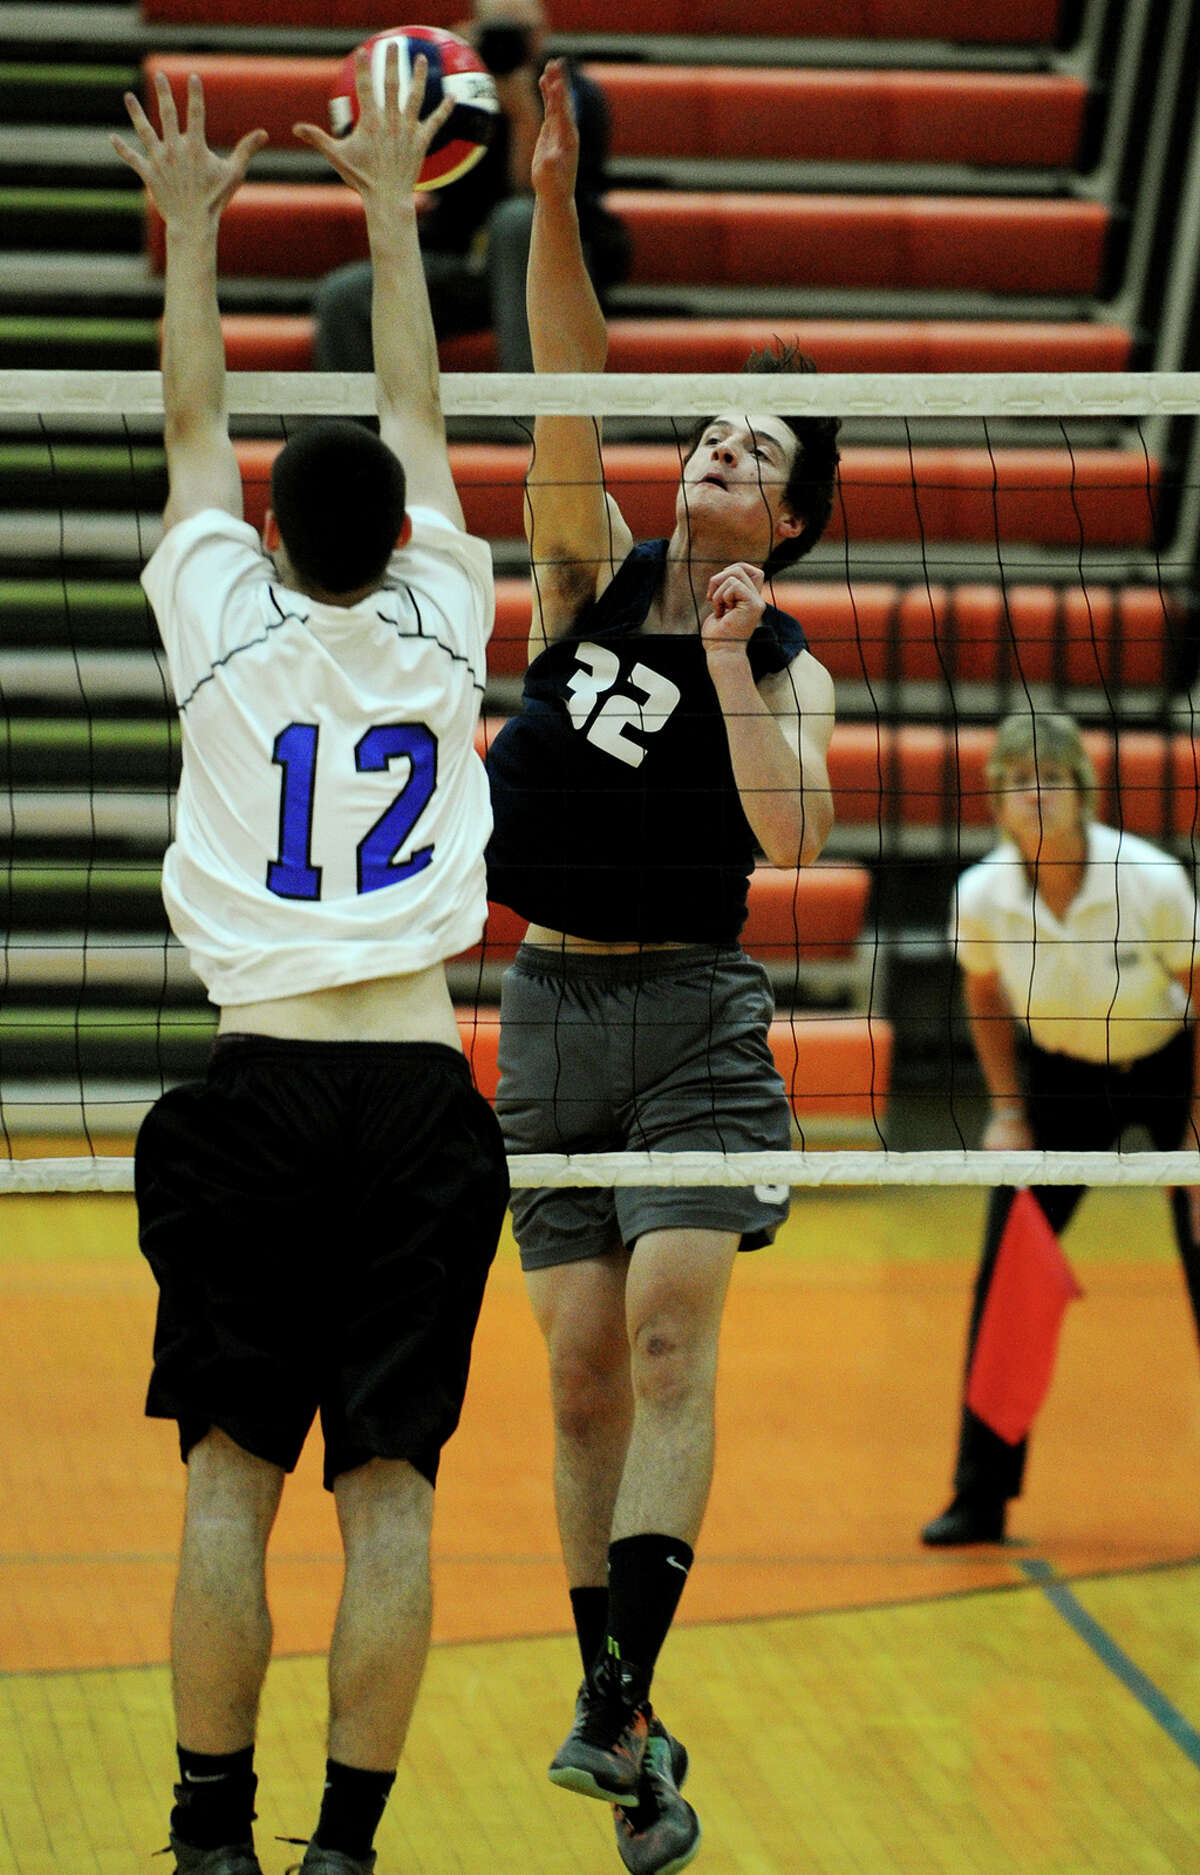 Staples' Chris Delaurentis spikes the ball as a Southington defender attempts to block during the Wreckers' loss in the Class L state boys volleyball semifinals at Shelton High School in Shelton, Conn. on Monday, June 9, 2014.